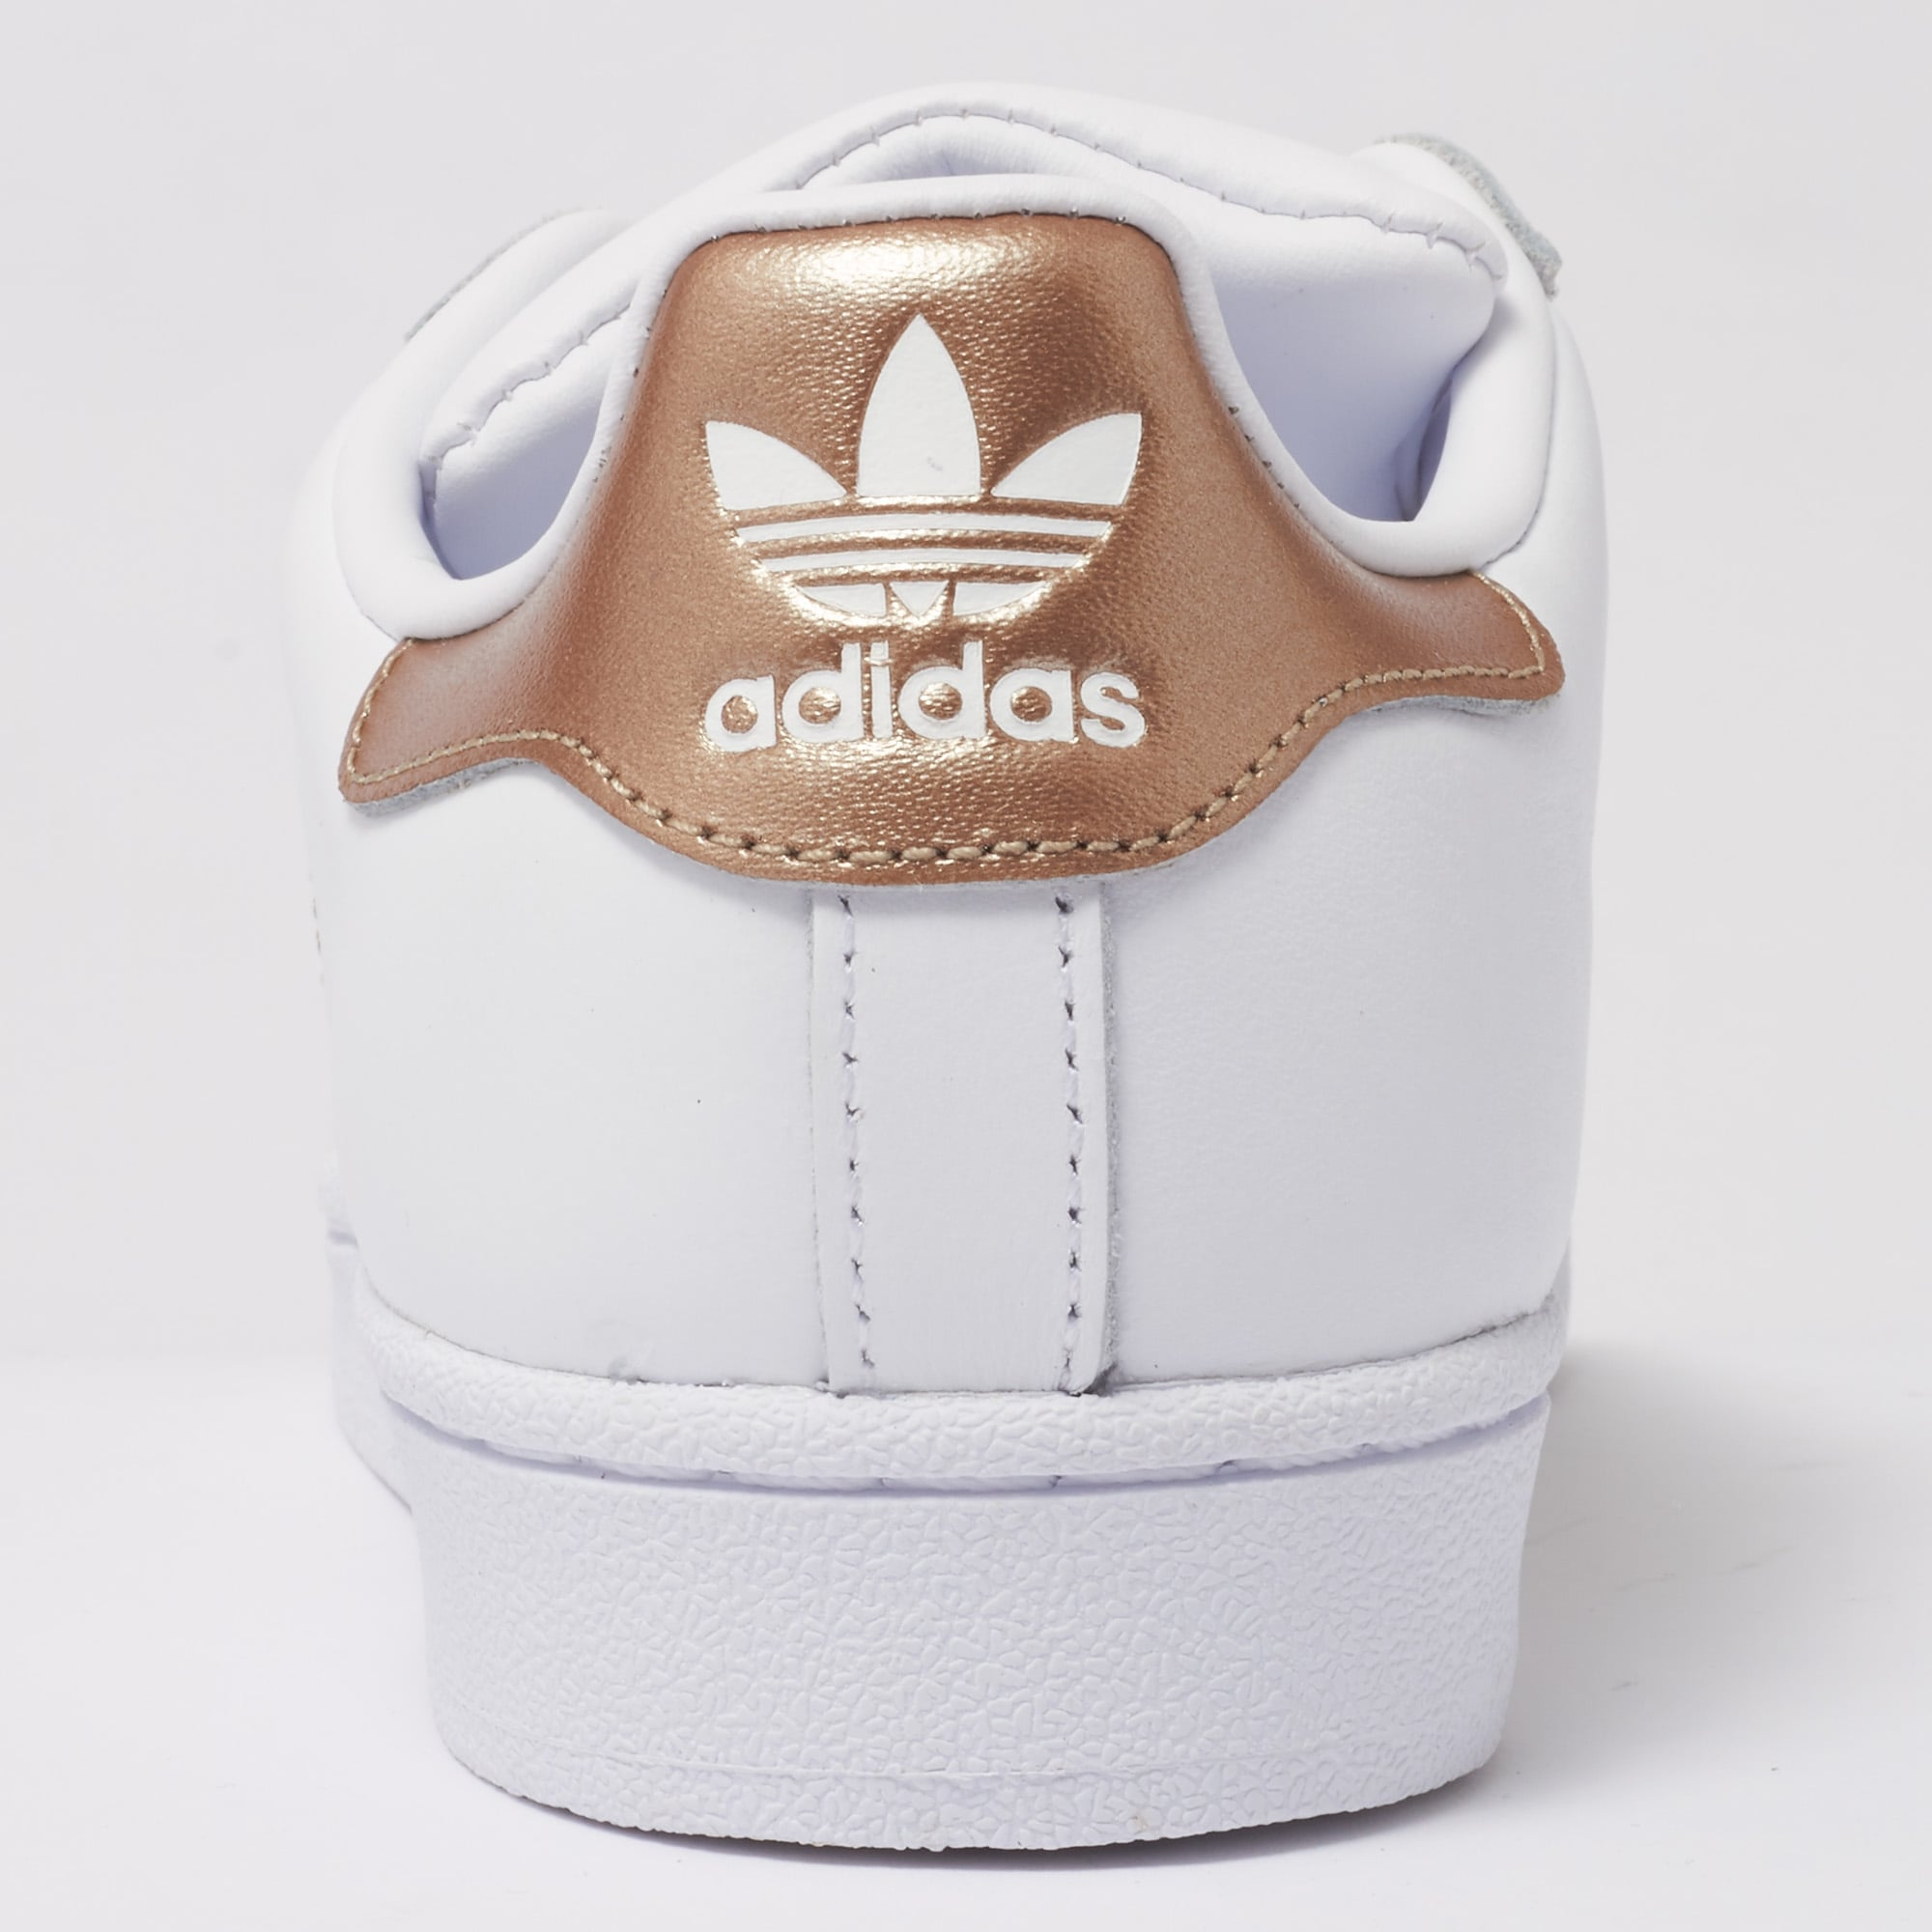 superstars adidas footwear white cyber